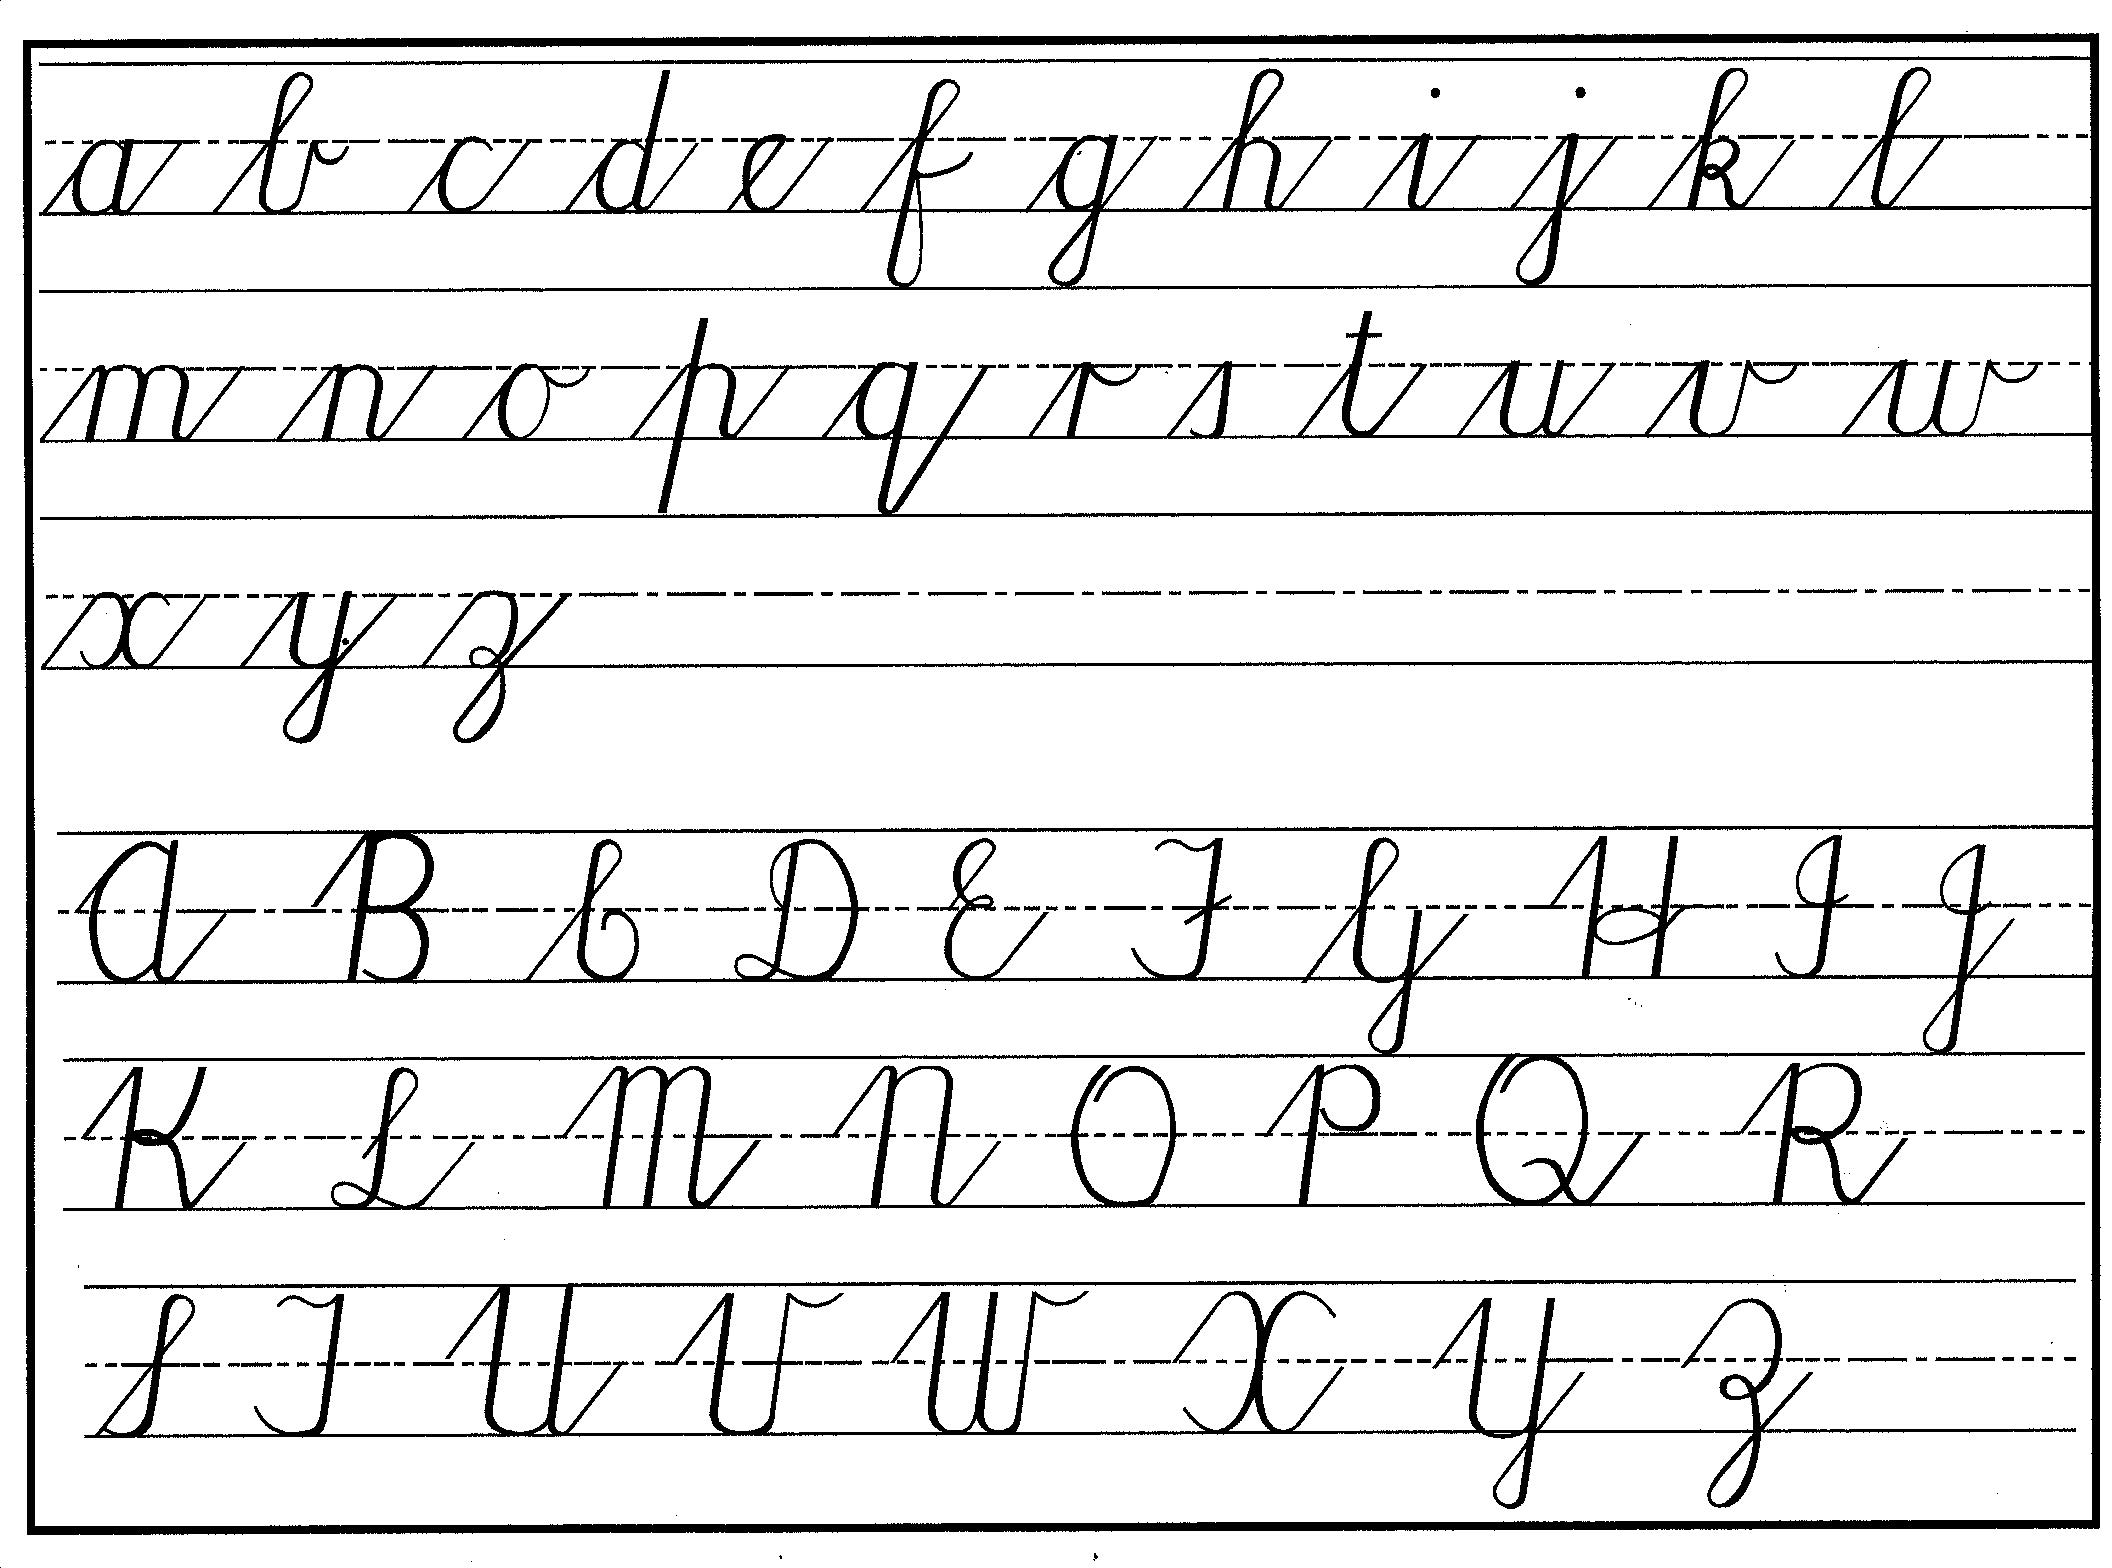 cursive writing examples Make beautiful cursive handwriting worksheets in seconds type letters - words - student name - sentences or paragraph and watch a cursive writing worksheet appear.